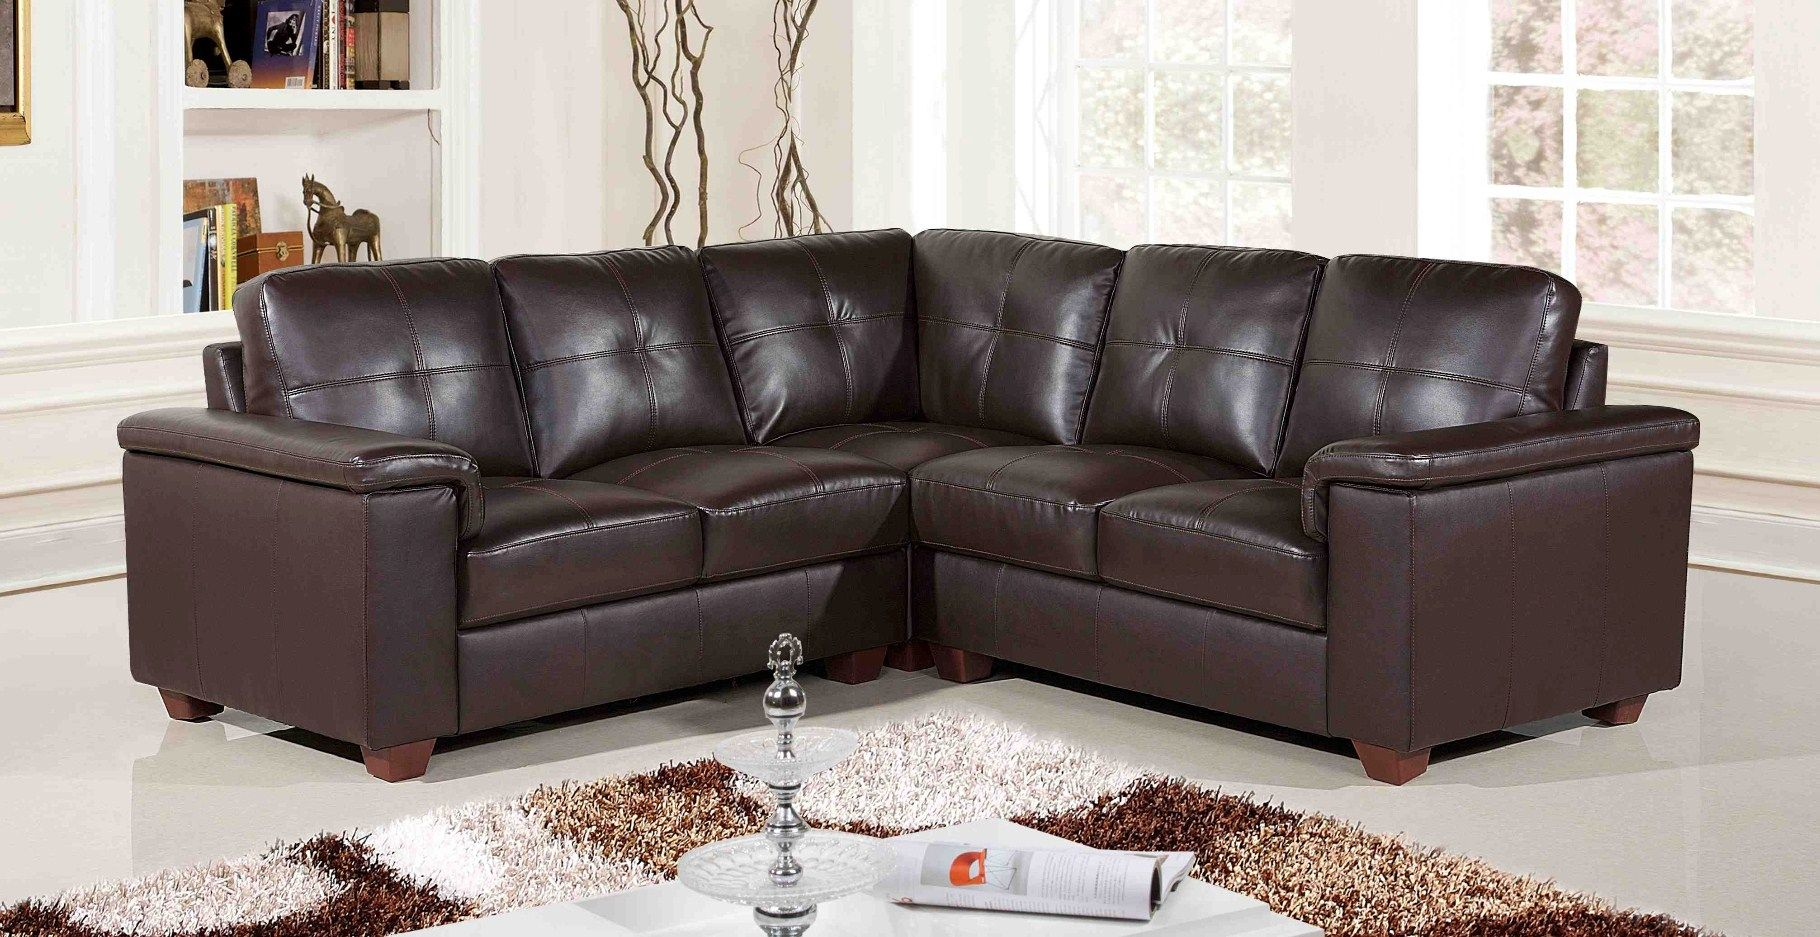 Leather Sofas Cheap Prices Dark Chocolate Sofa Furniture Classic Sectional Affordable With Brown Color For Small Spaces Living Room